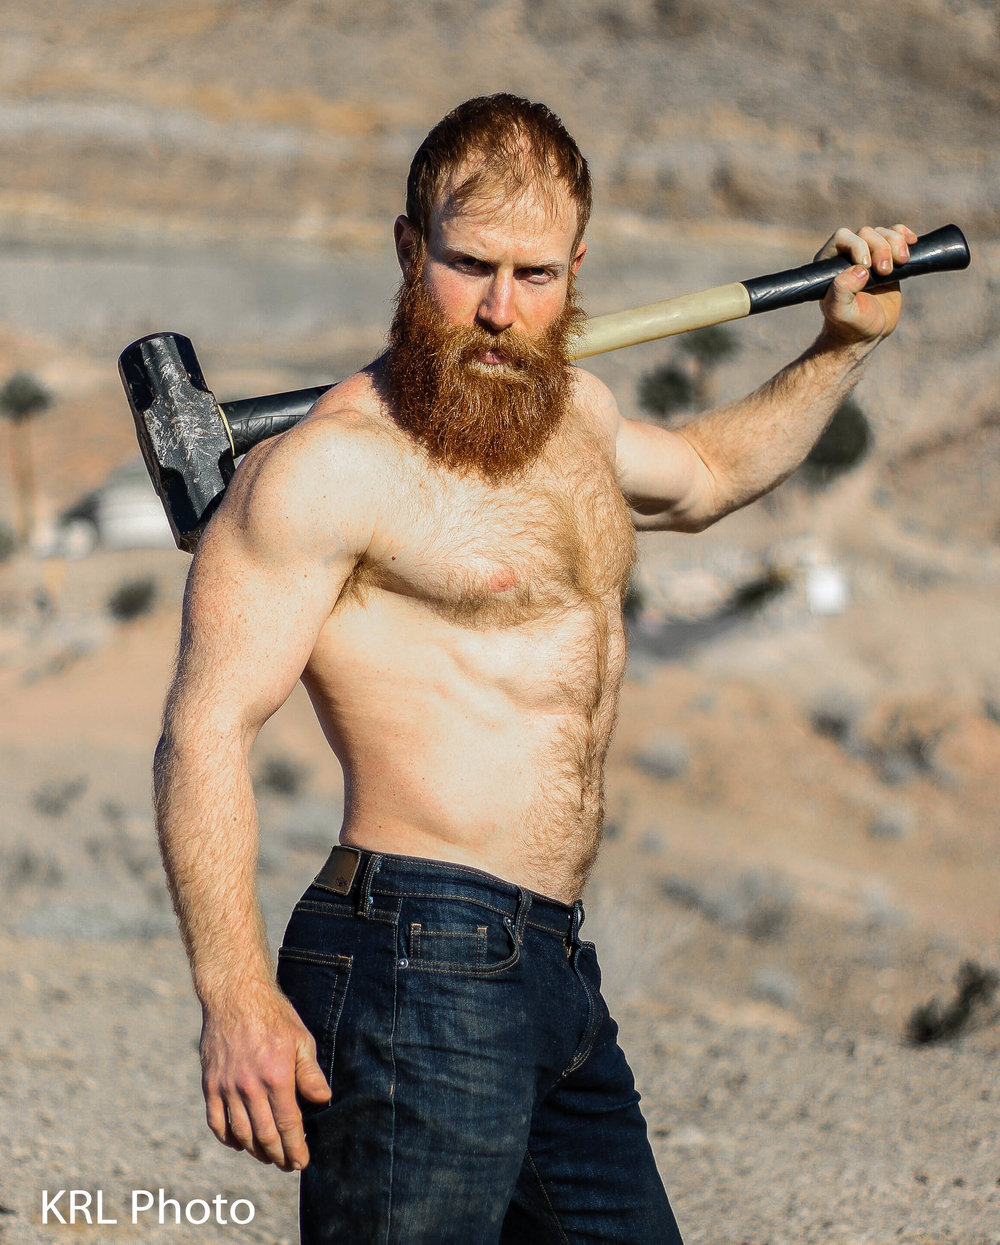 GingerWarrior2 (1 of 1).jpg